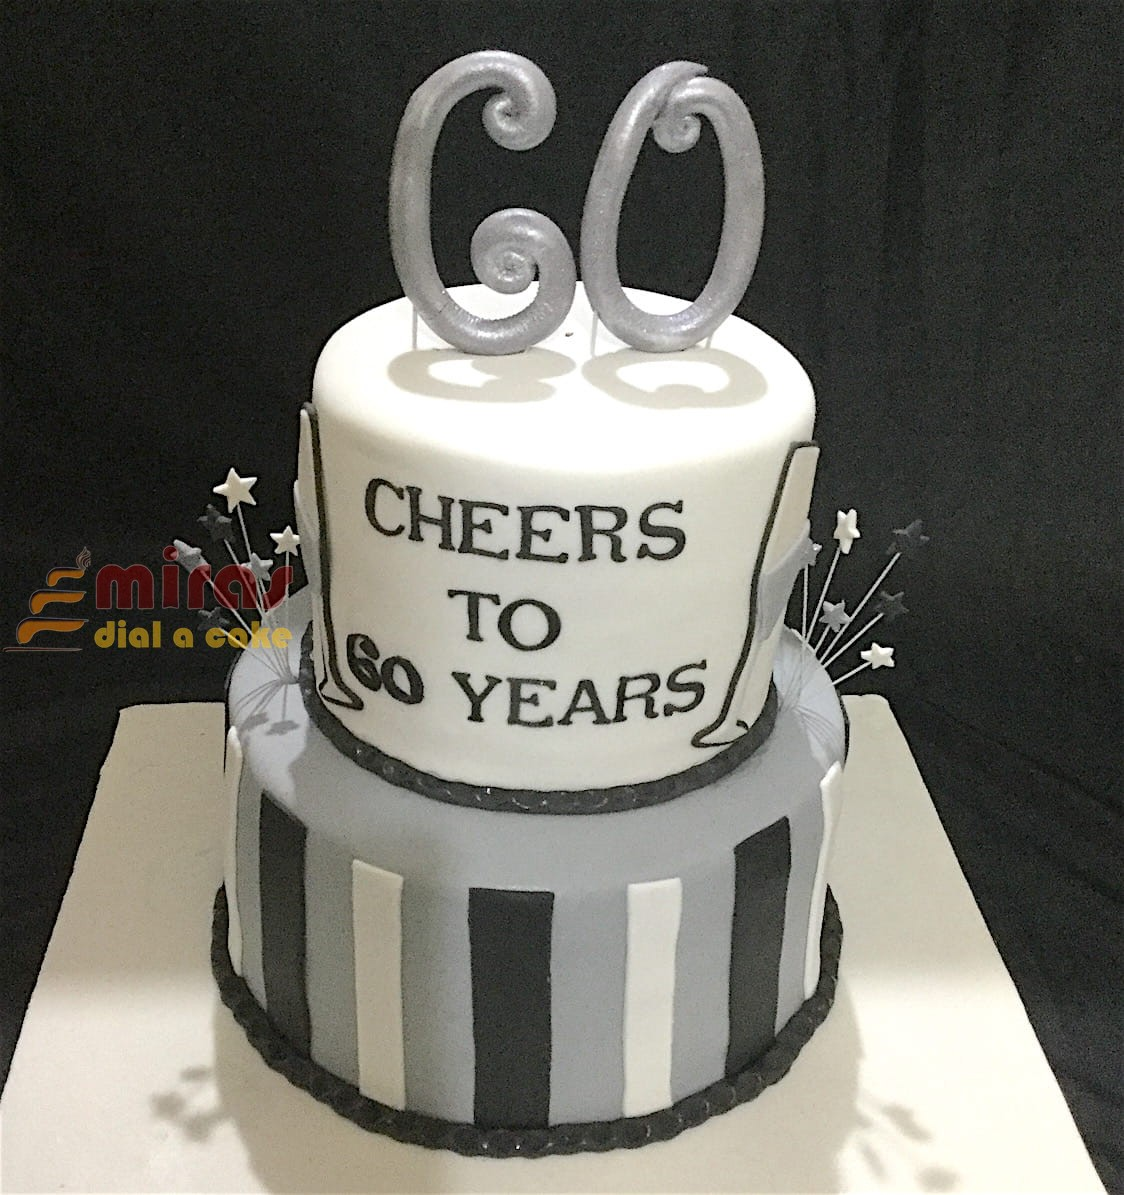 Cheers To 60 Years Cake 2Kg 3600JPG